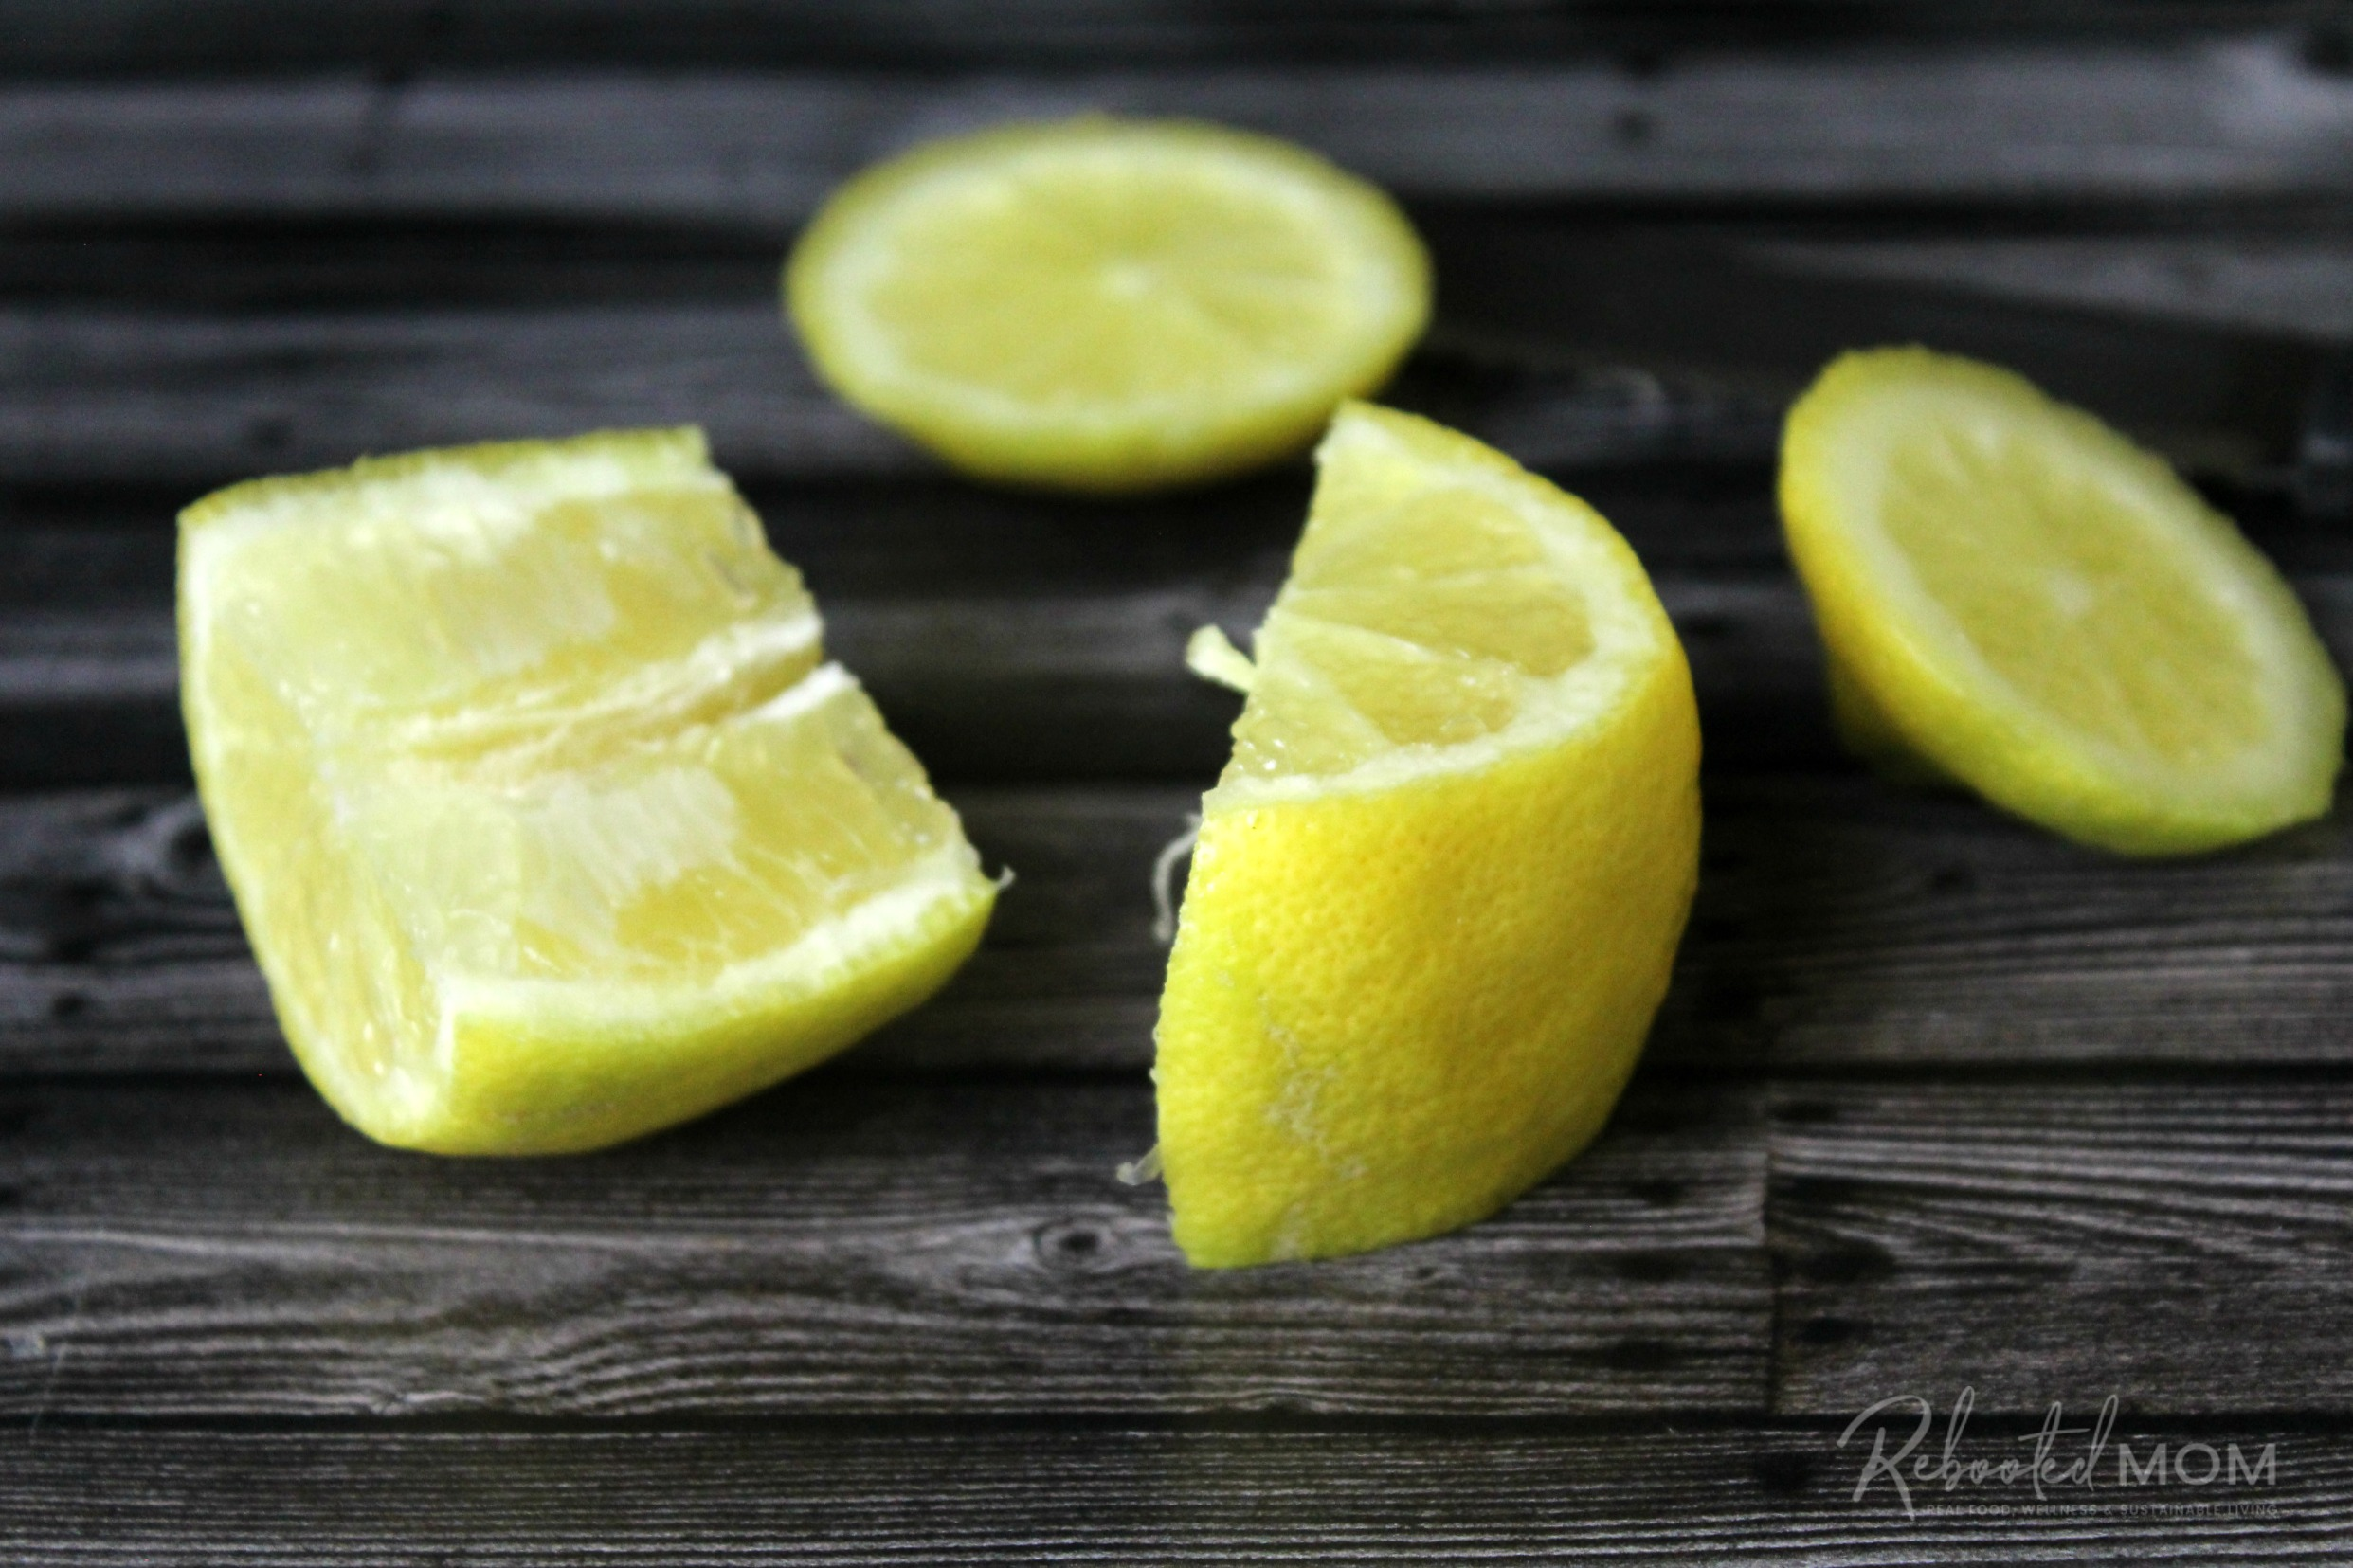 Cut lemons  \\ An amazing condiment, preserved lemons (fermented lemons) have added probiotics and are a wonderful addition to vegetable, pasta, meat and salad dishes.